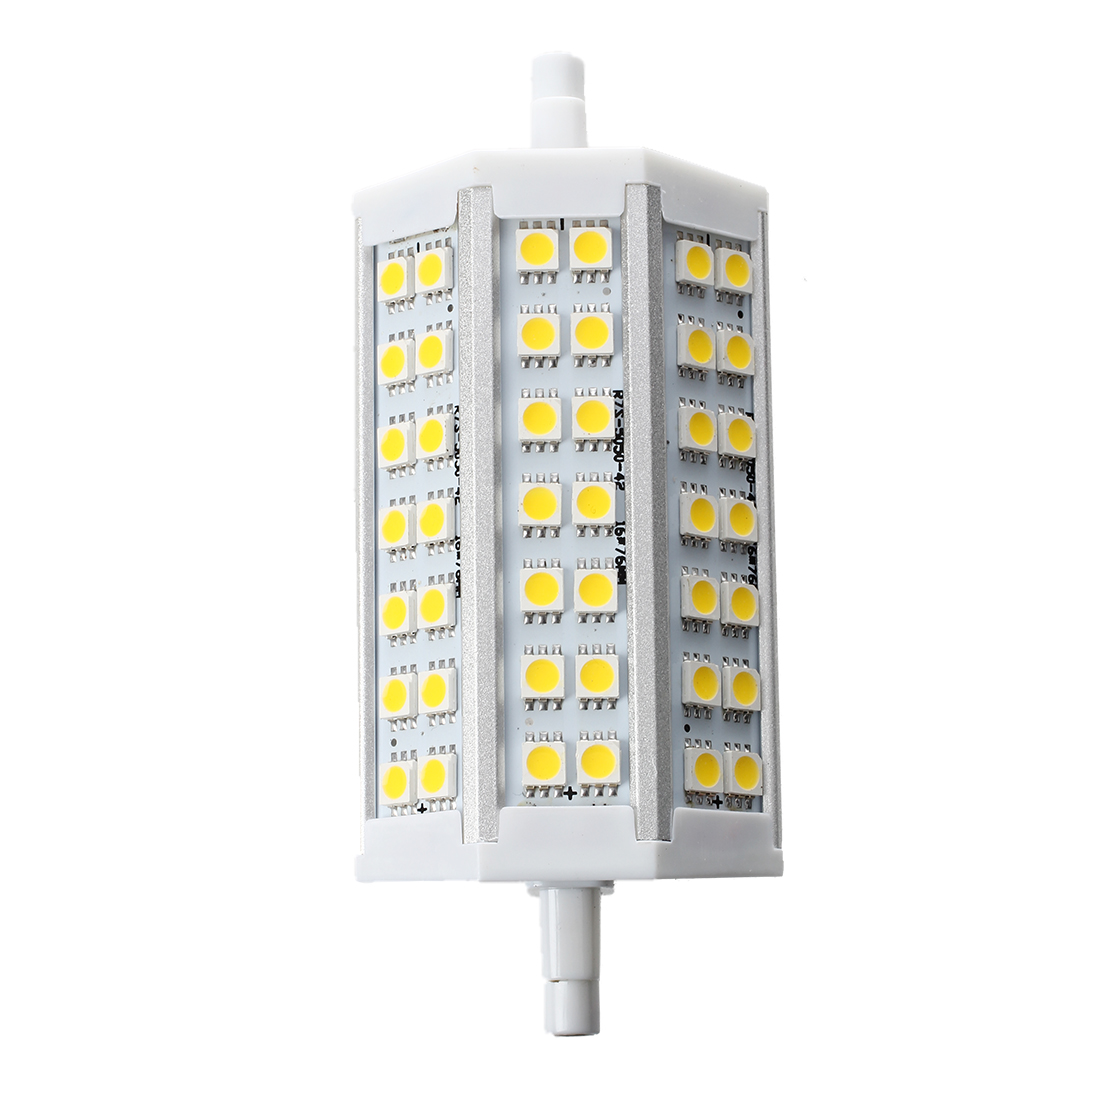 Led Halogen Fp R7s J118 10w Led Warm White Colour Replacement For